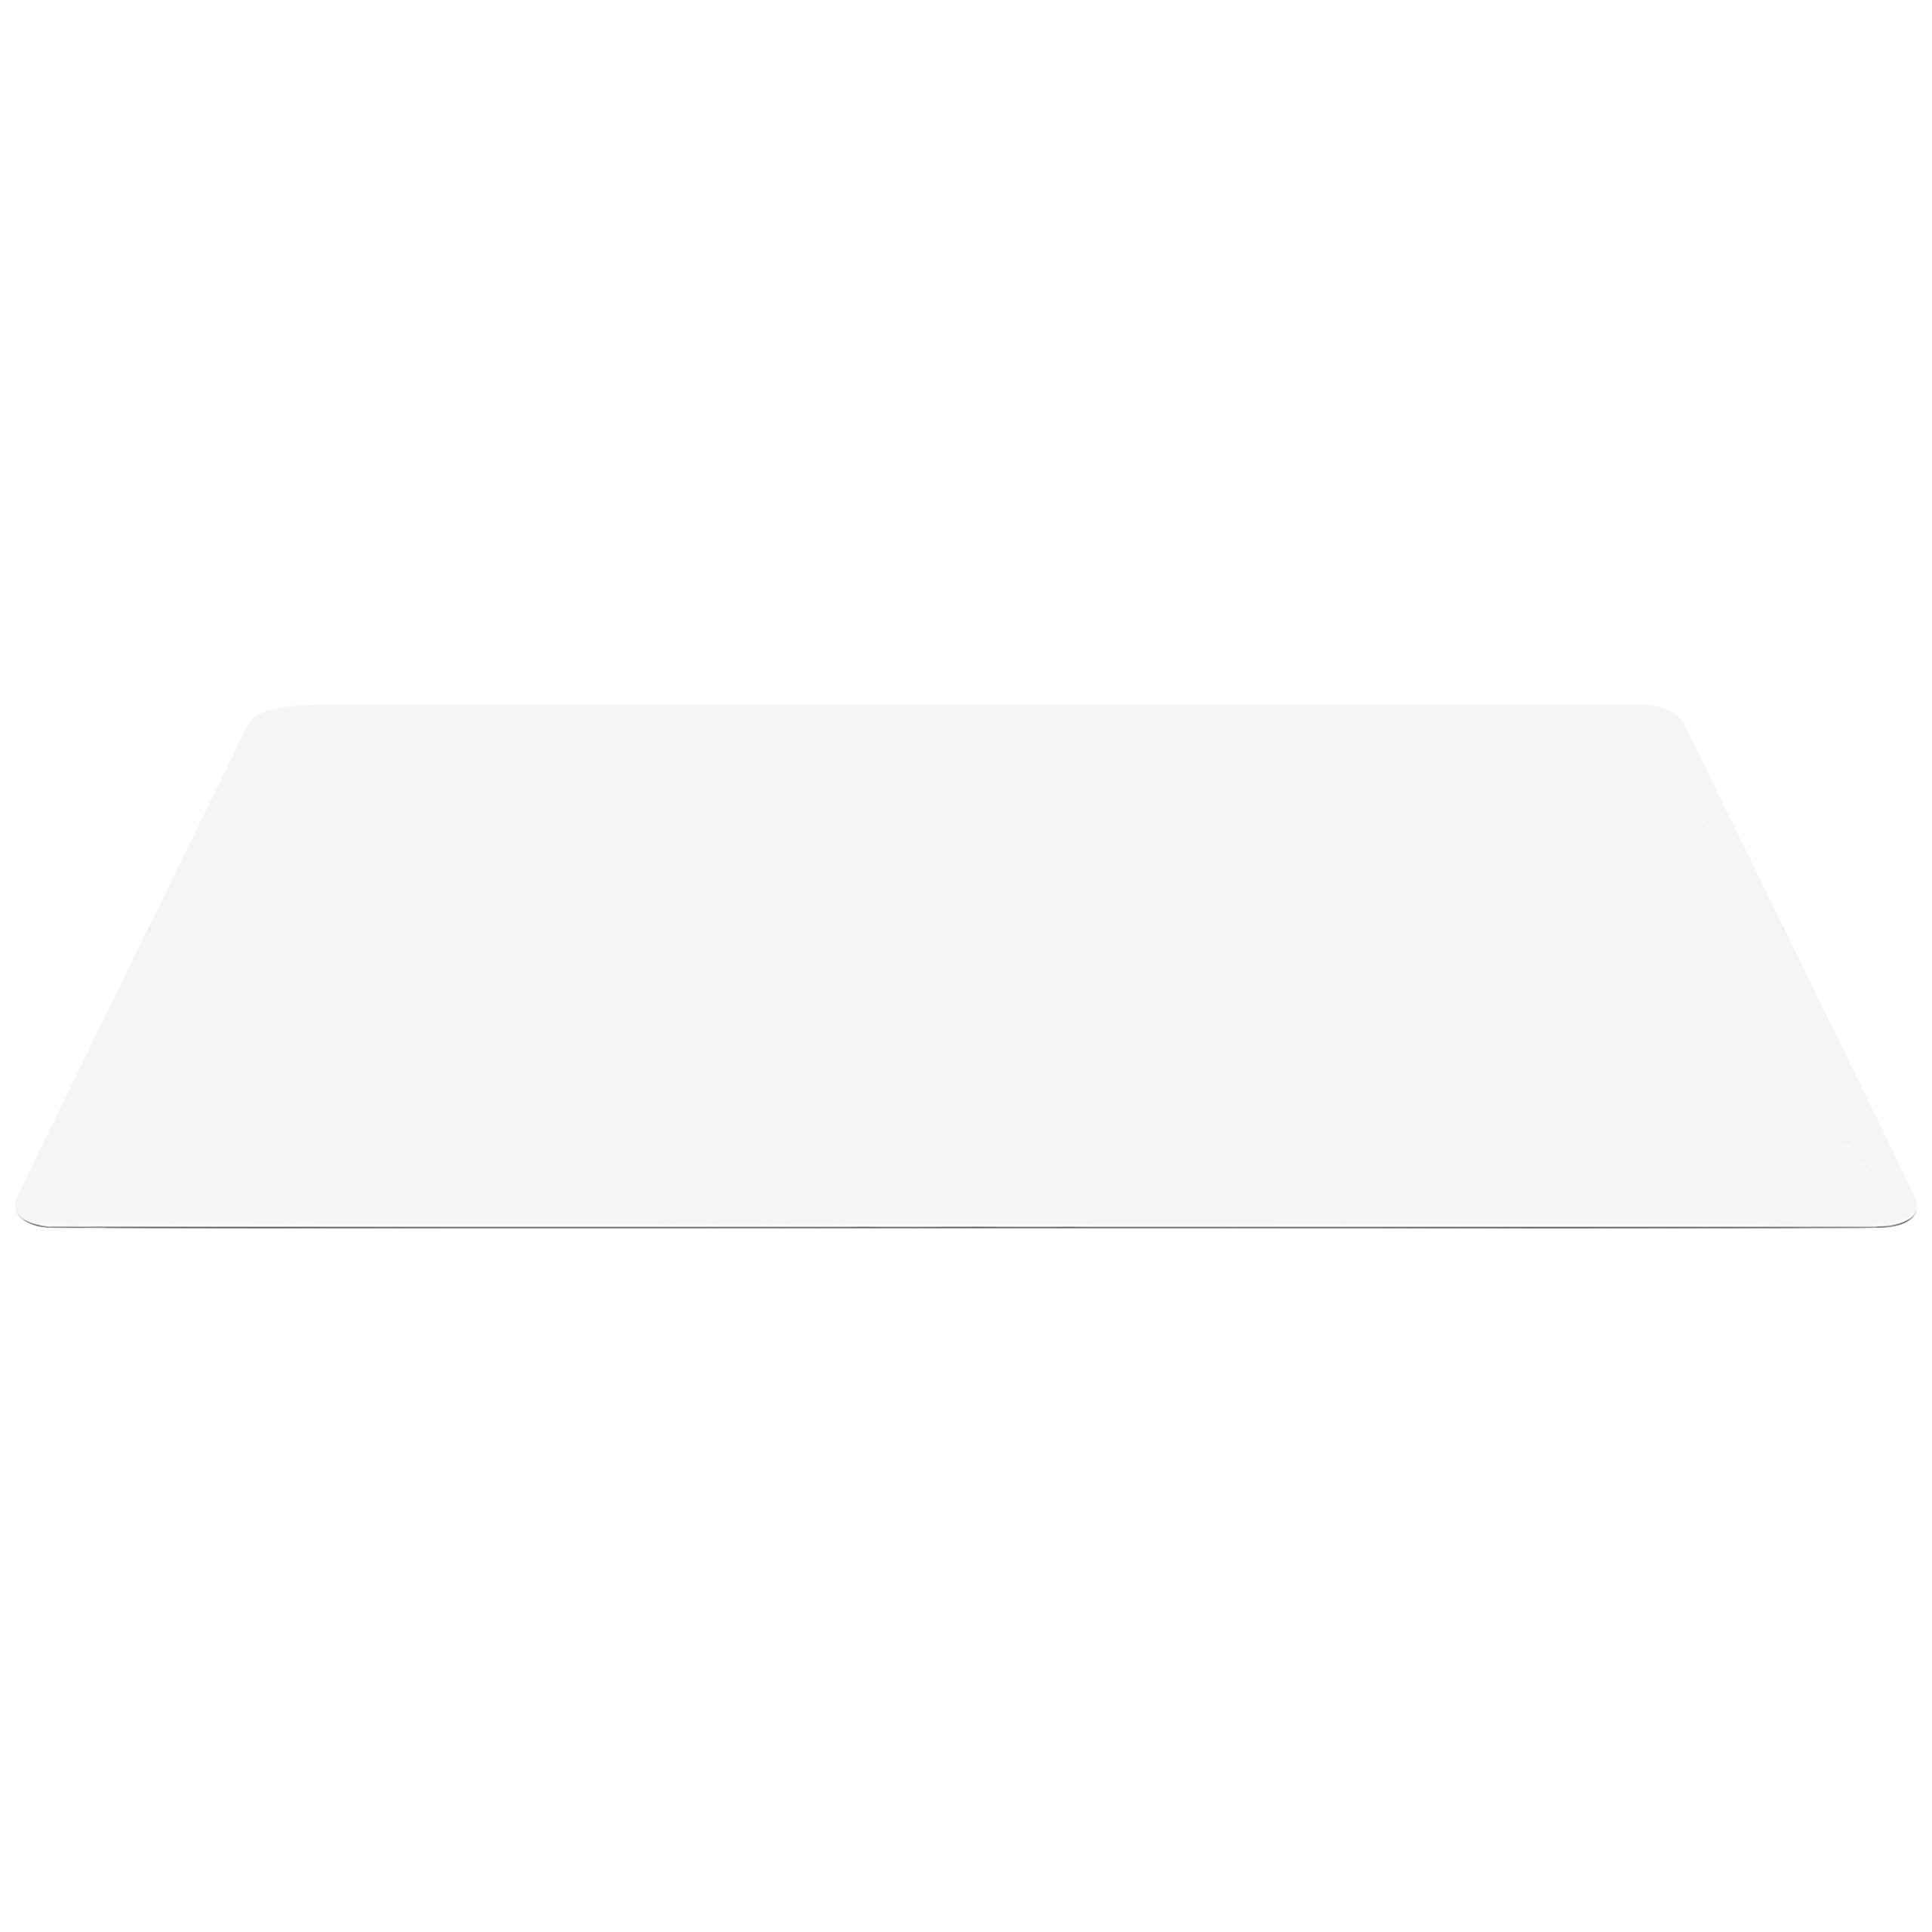 Best Choice Products 47x59in PVC Multi-Purpose Chair Floor Mat Hardwood Protector for Scratch, Scuff, Marking Protection, Clear